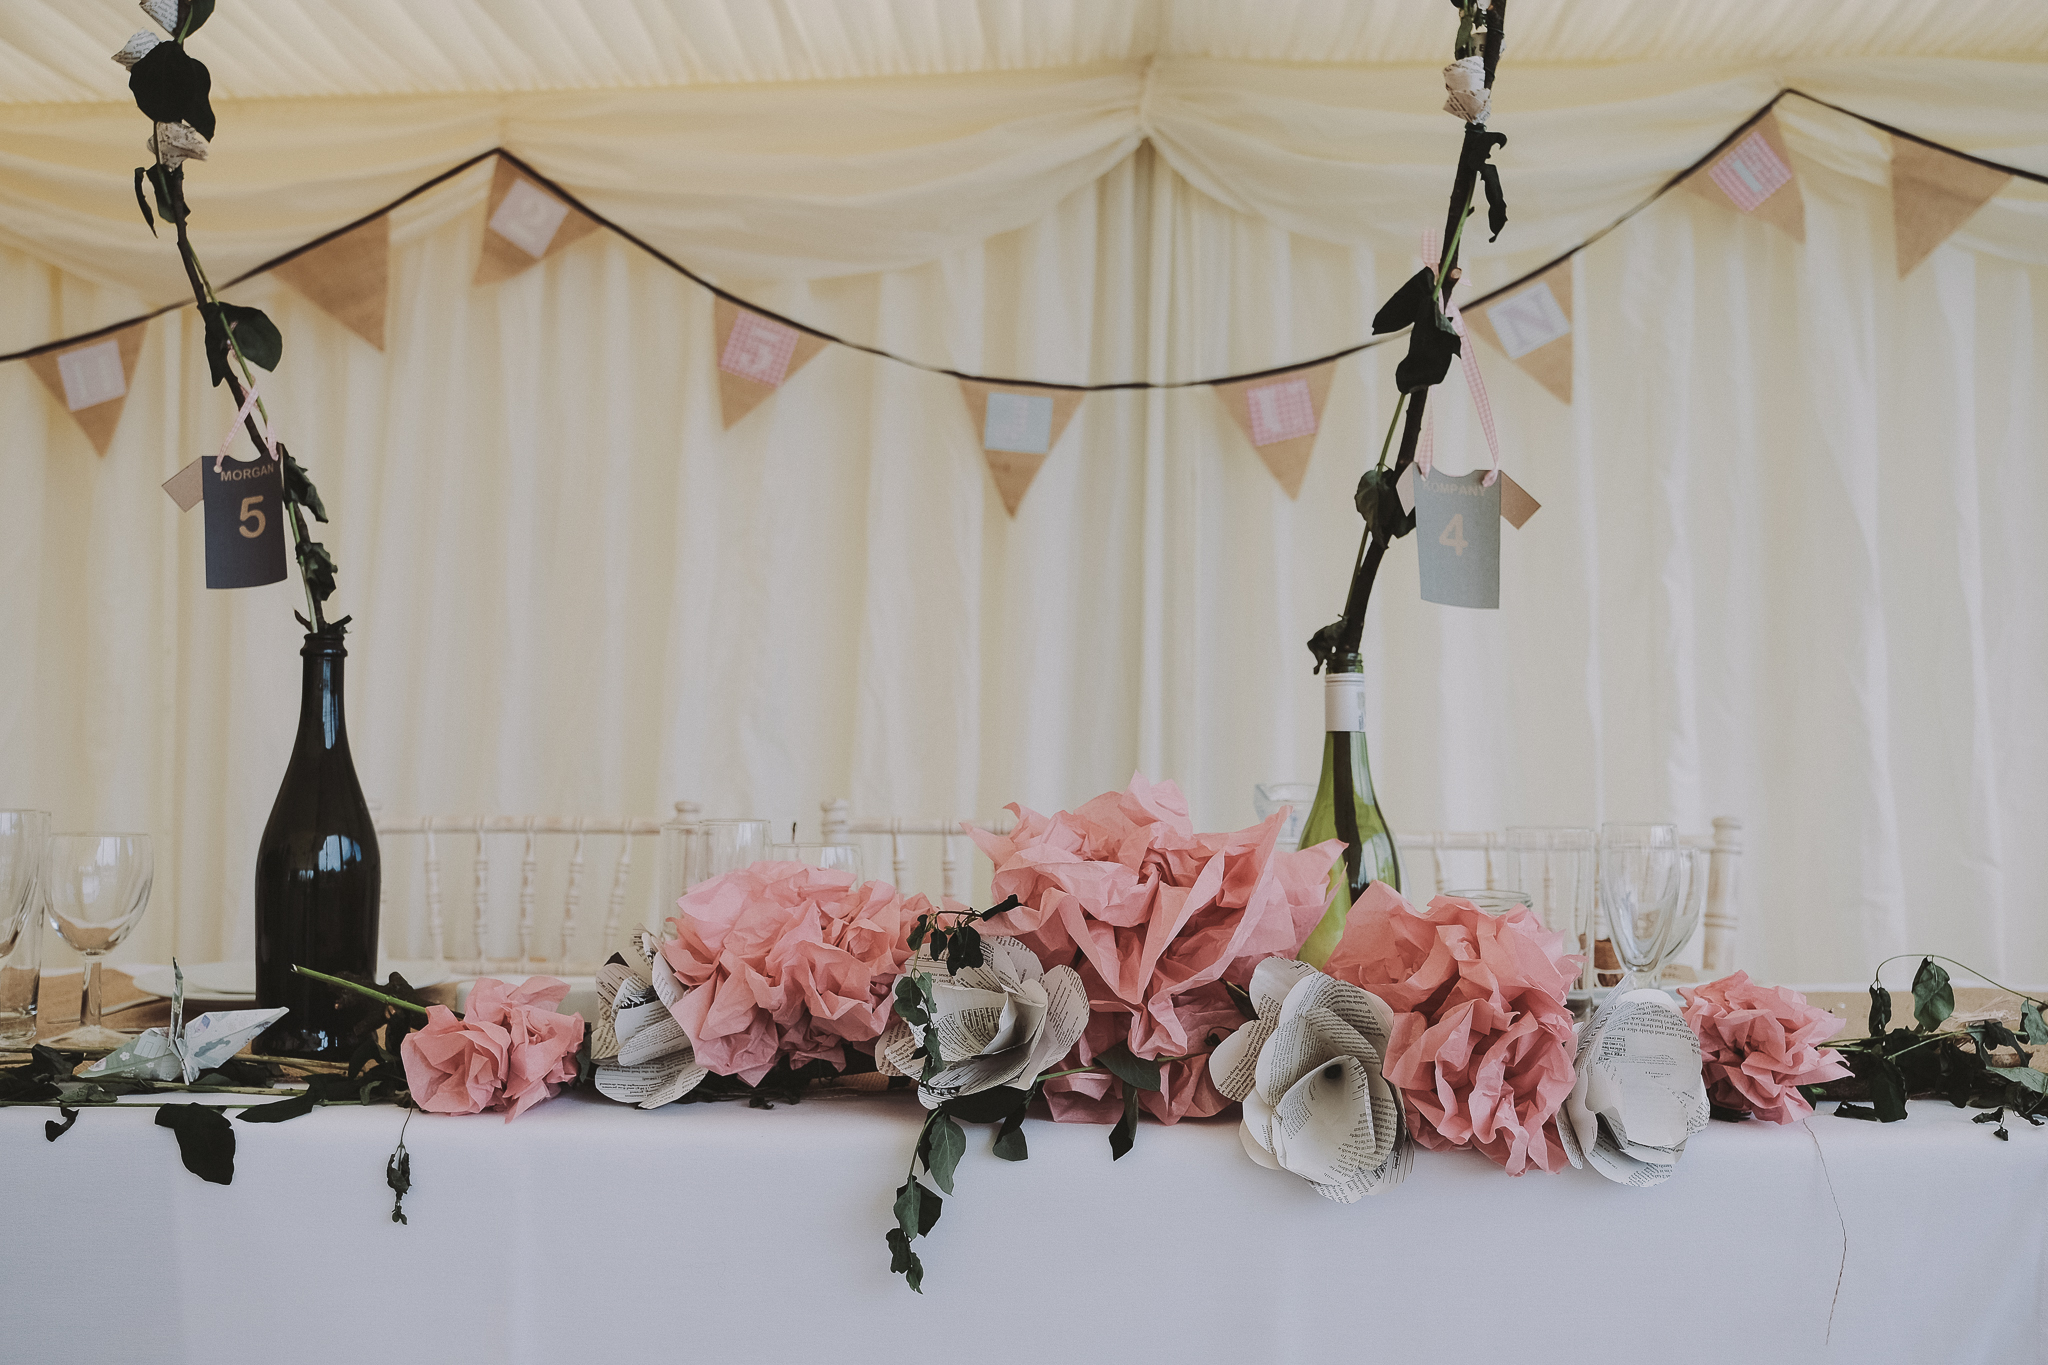 Close up of homemade flower centrepiece on top table